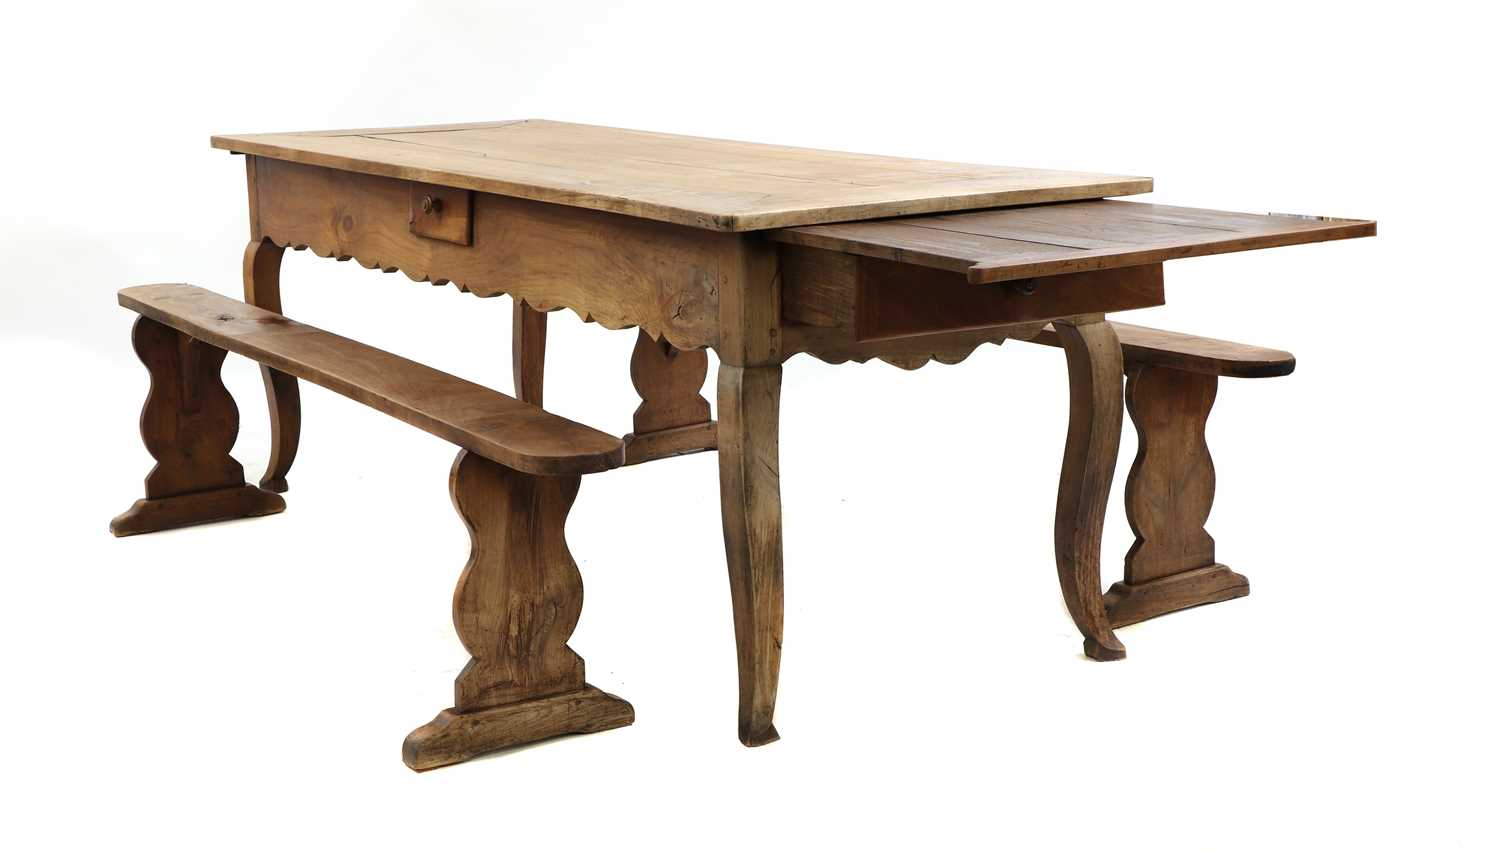 A French provincial sycamore kitchen table, - Image 2 of 10